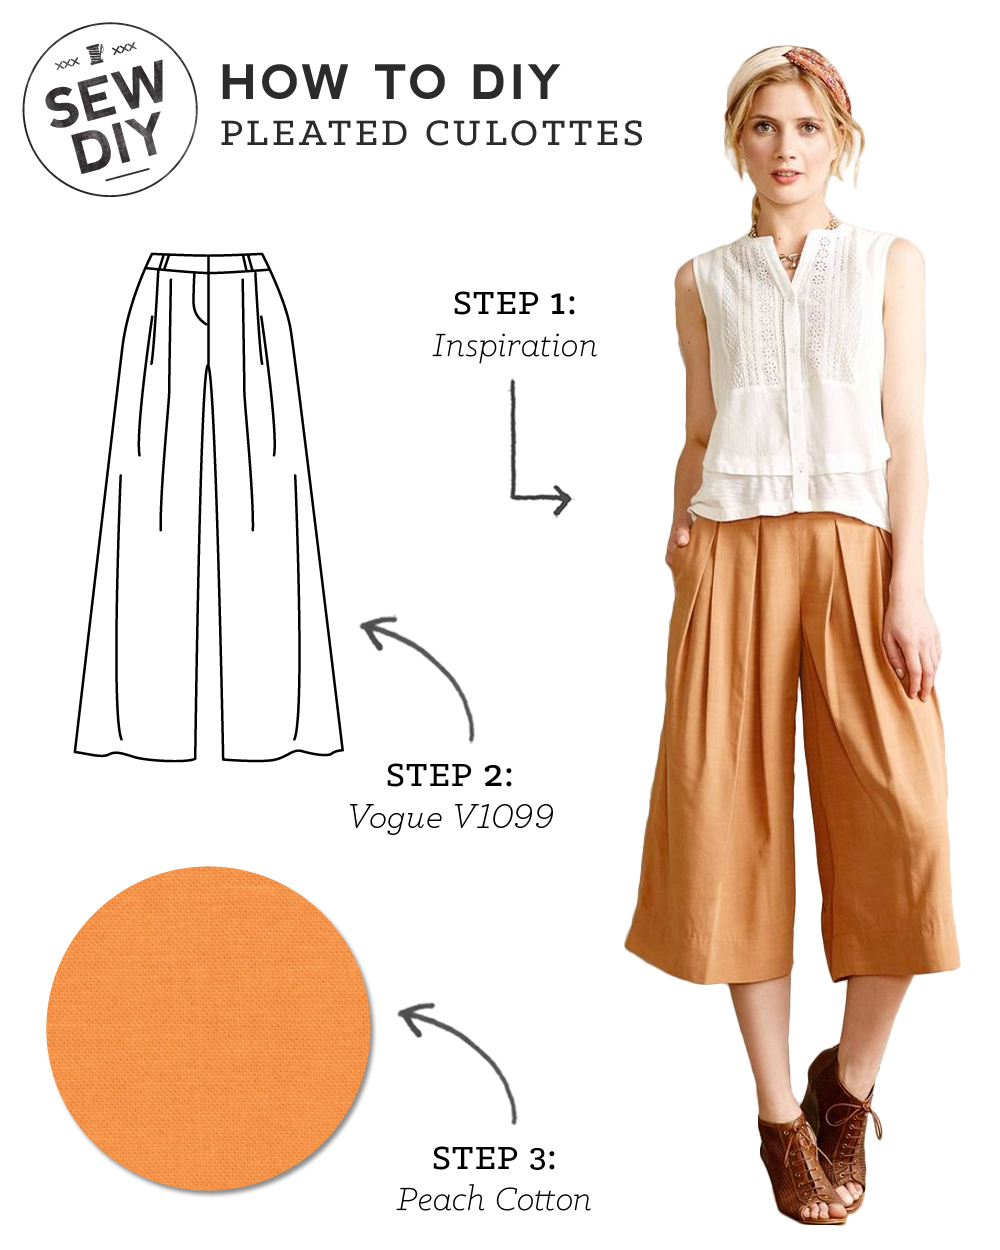 Pleated Pants Back In Style